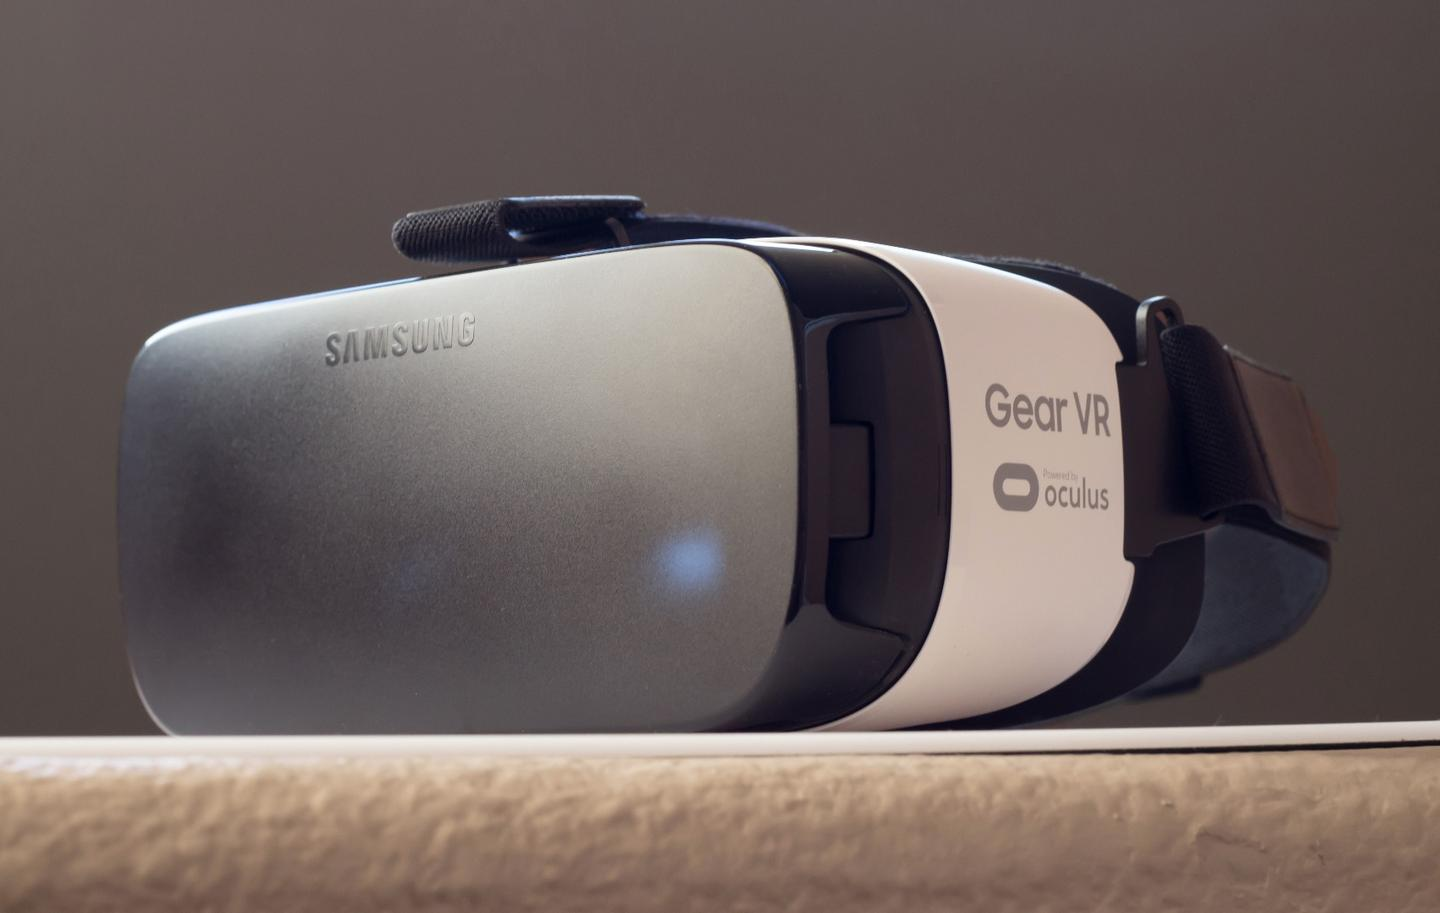 If Google is working on a standalone VR headset, it may not be much different from smartphone-based headsets like the Gear VR (pictured)